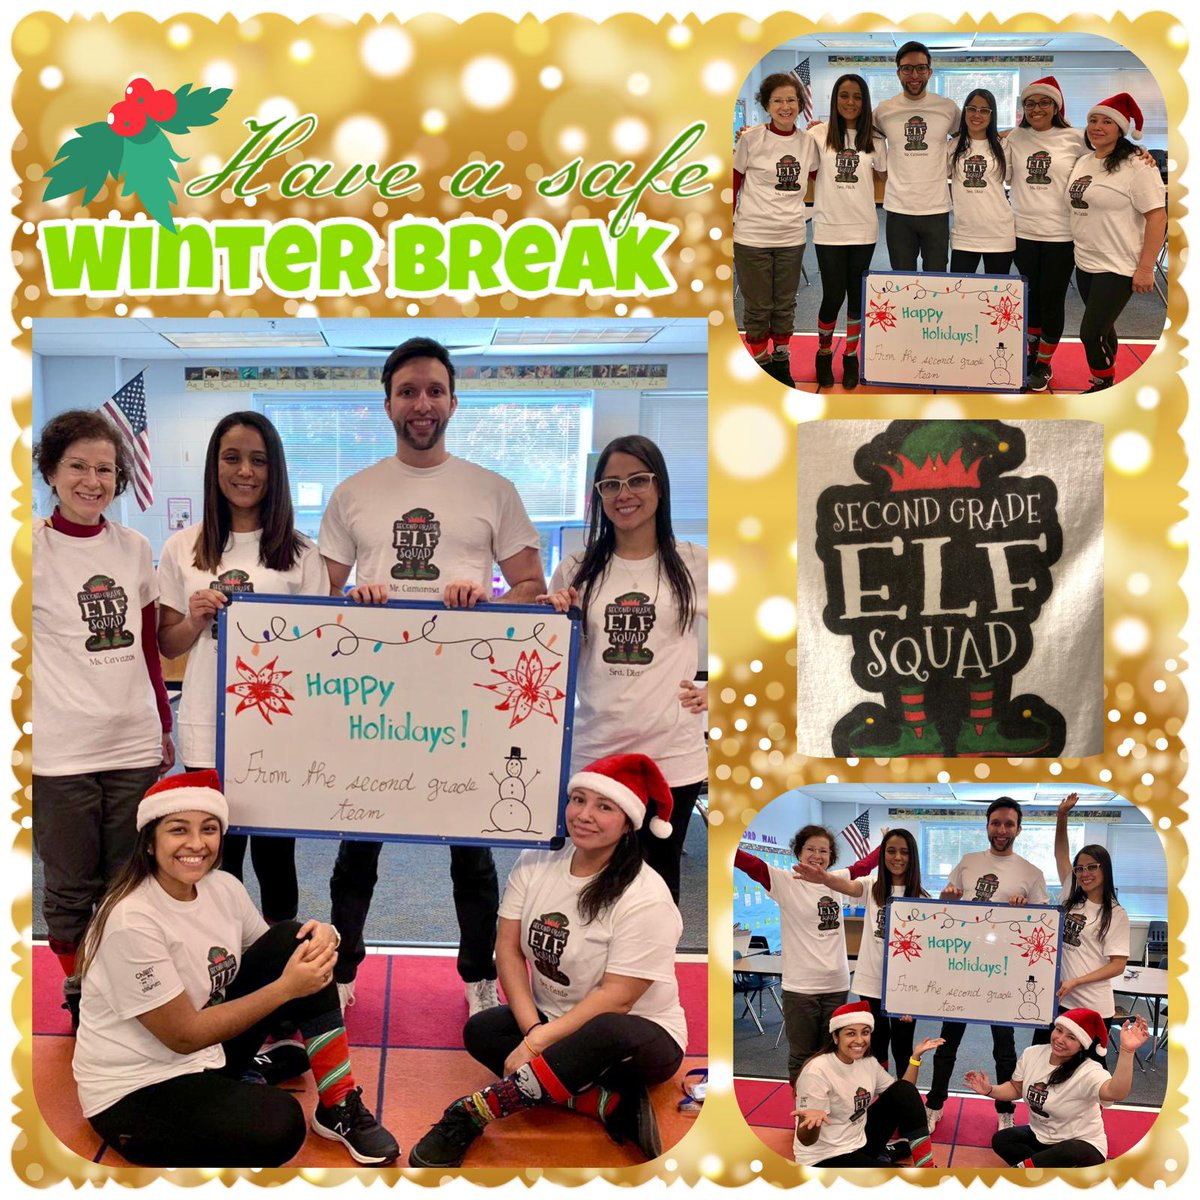 Wishing you all a warm and safe winter break from the 2nd grade team!! <a target='_blank' href='http://twitter.com/Principal_CIS'>@Principal_CIS</a> <a target='_blank' href='http://twitter.com/Gonzales_Immer'>@Gonzales_Immer</a> <a target='_blank' href='http://twitter.com/CIS_PTA'>@CIS_PTA</a> <a target='_blank' href='http://twitter.com/MsRivasCIS'>@MsRivasCIS</a> <a target='_blank' href='http://twitter.com/fitchandrea1'>@fitchandrea1</a> <a target='_blank' href='http://twitter.com/DDBuildingPaths'>@DDBuildingPaths</a> <a target='_blank' href='http://twitter.com/Cante2_CIS'>@Cante2_CIS</a> <a target='_blank' href='https://t.co/bX516Lycyc'>https://t.co/bX516Lycyc</a>